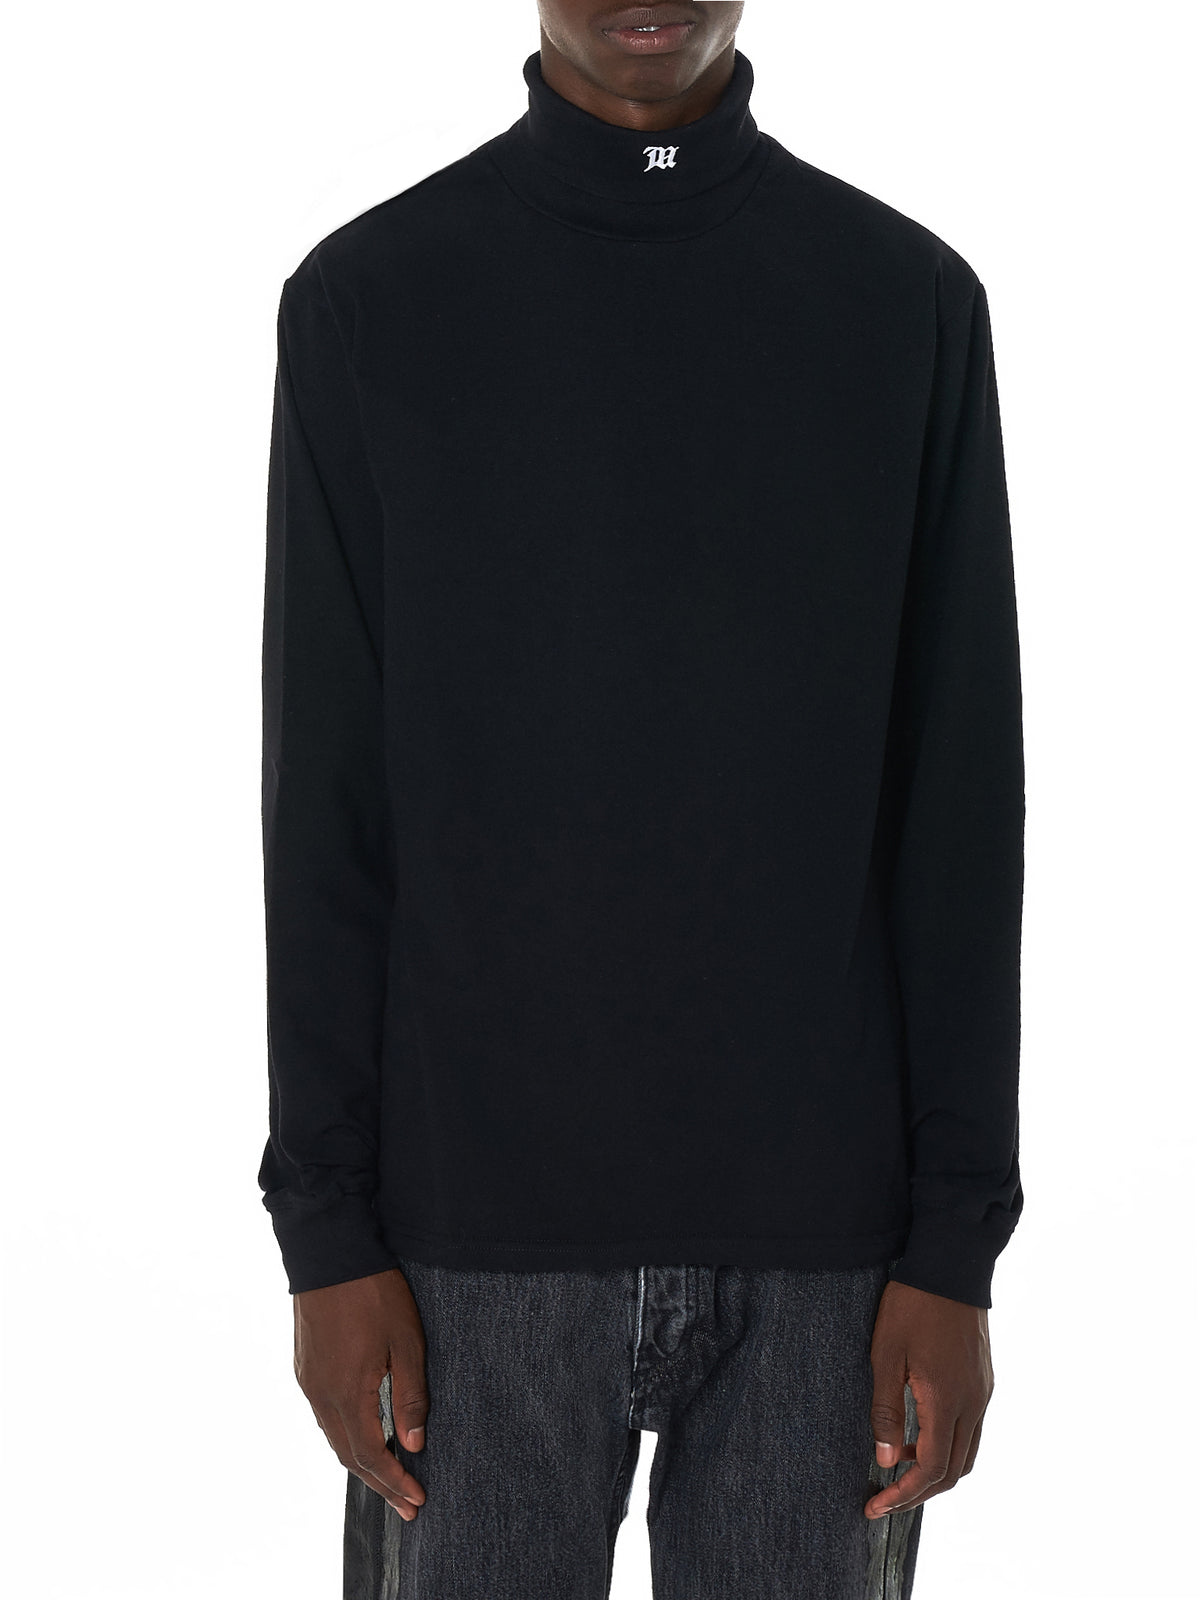 MISBHV Turtleneck Sweater - Hlorenzo Front